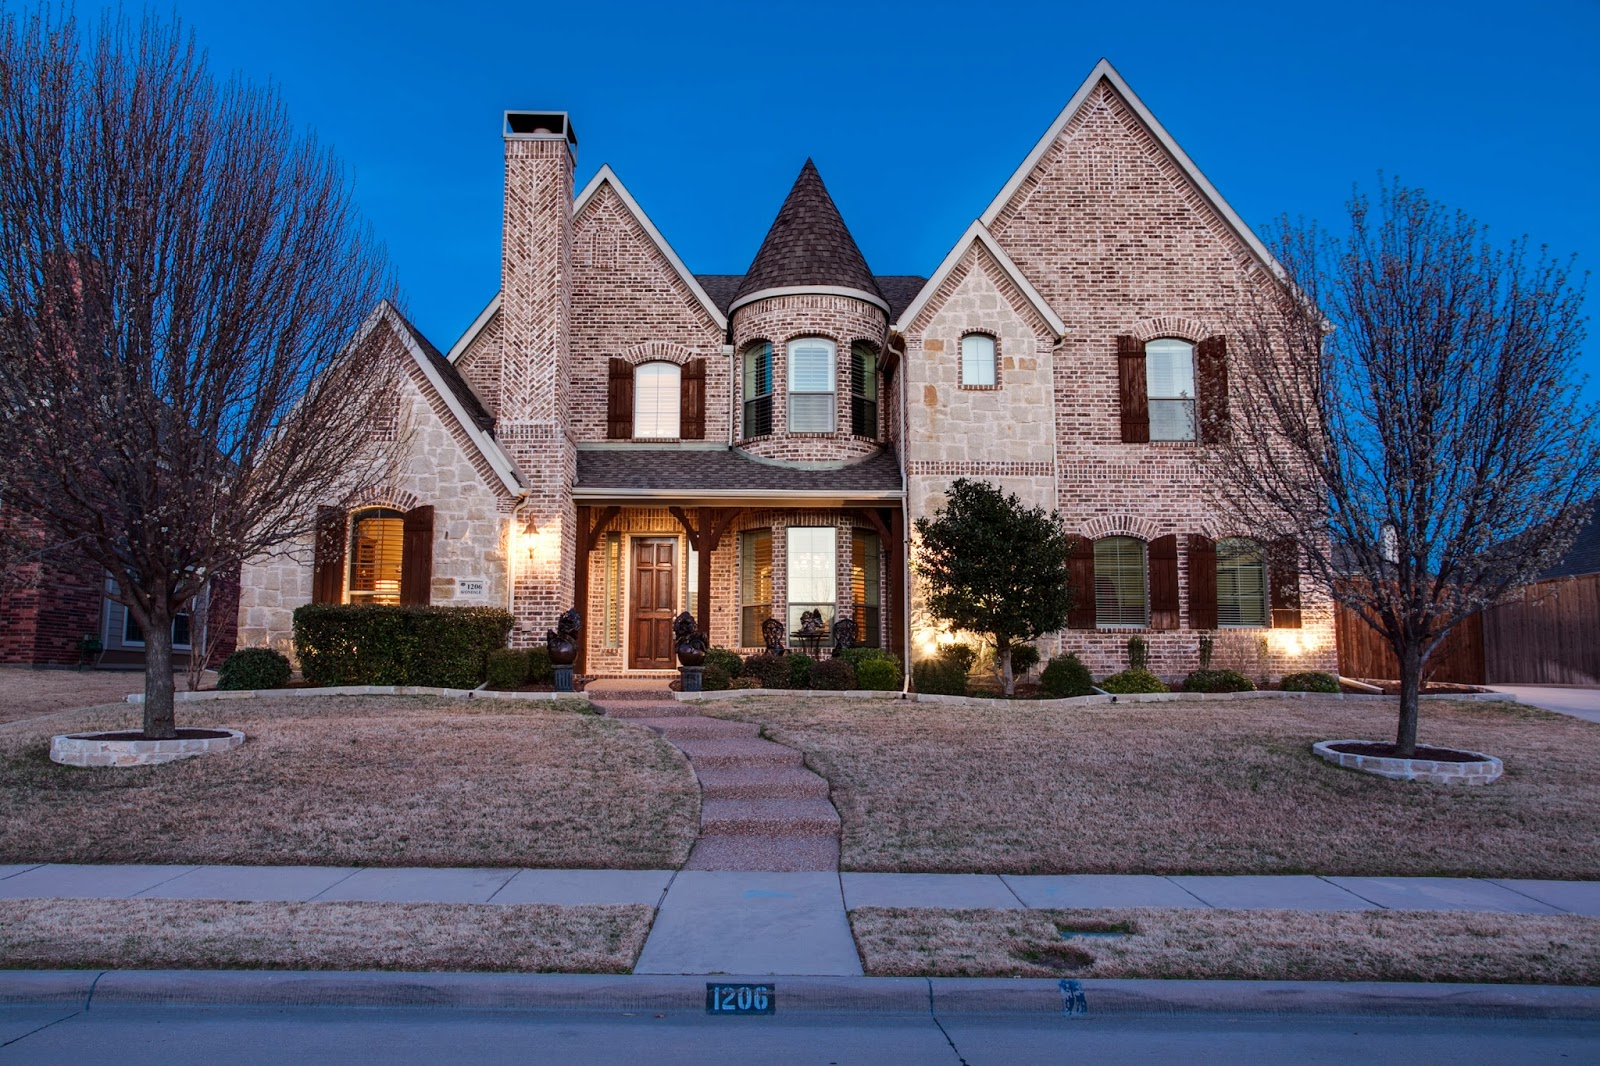 Blog shuey group real estate news just sold 1206 for How to become a home builder in texas